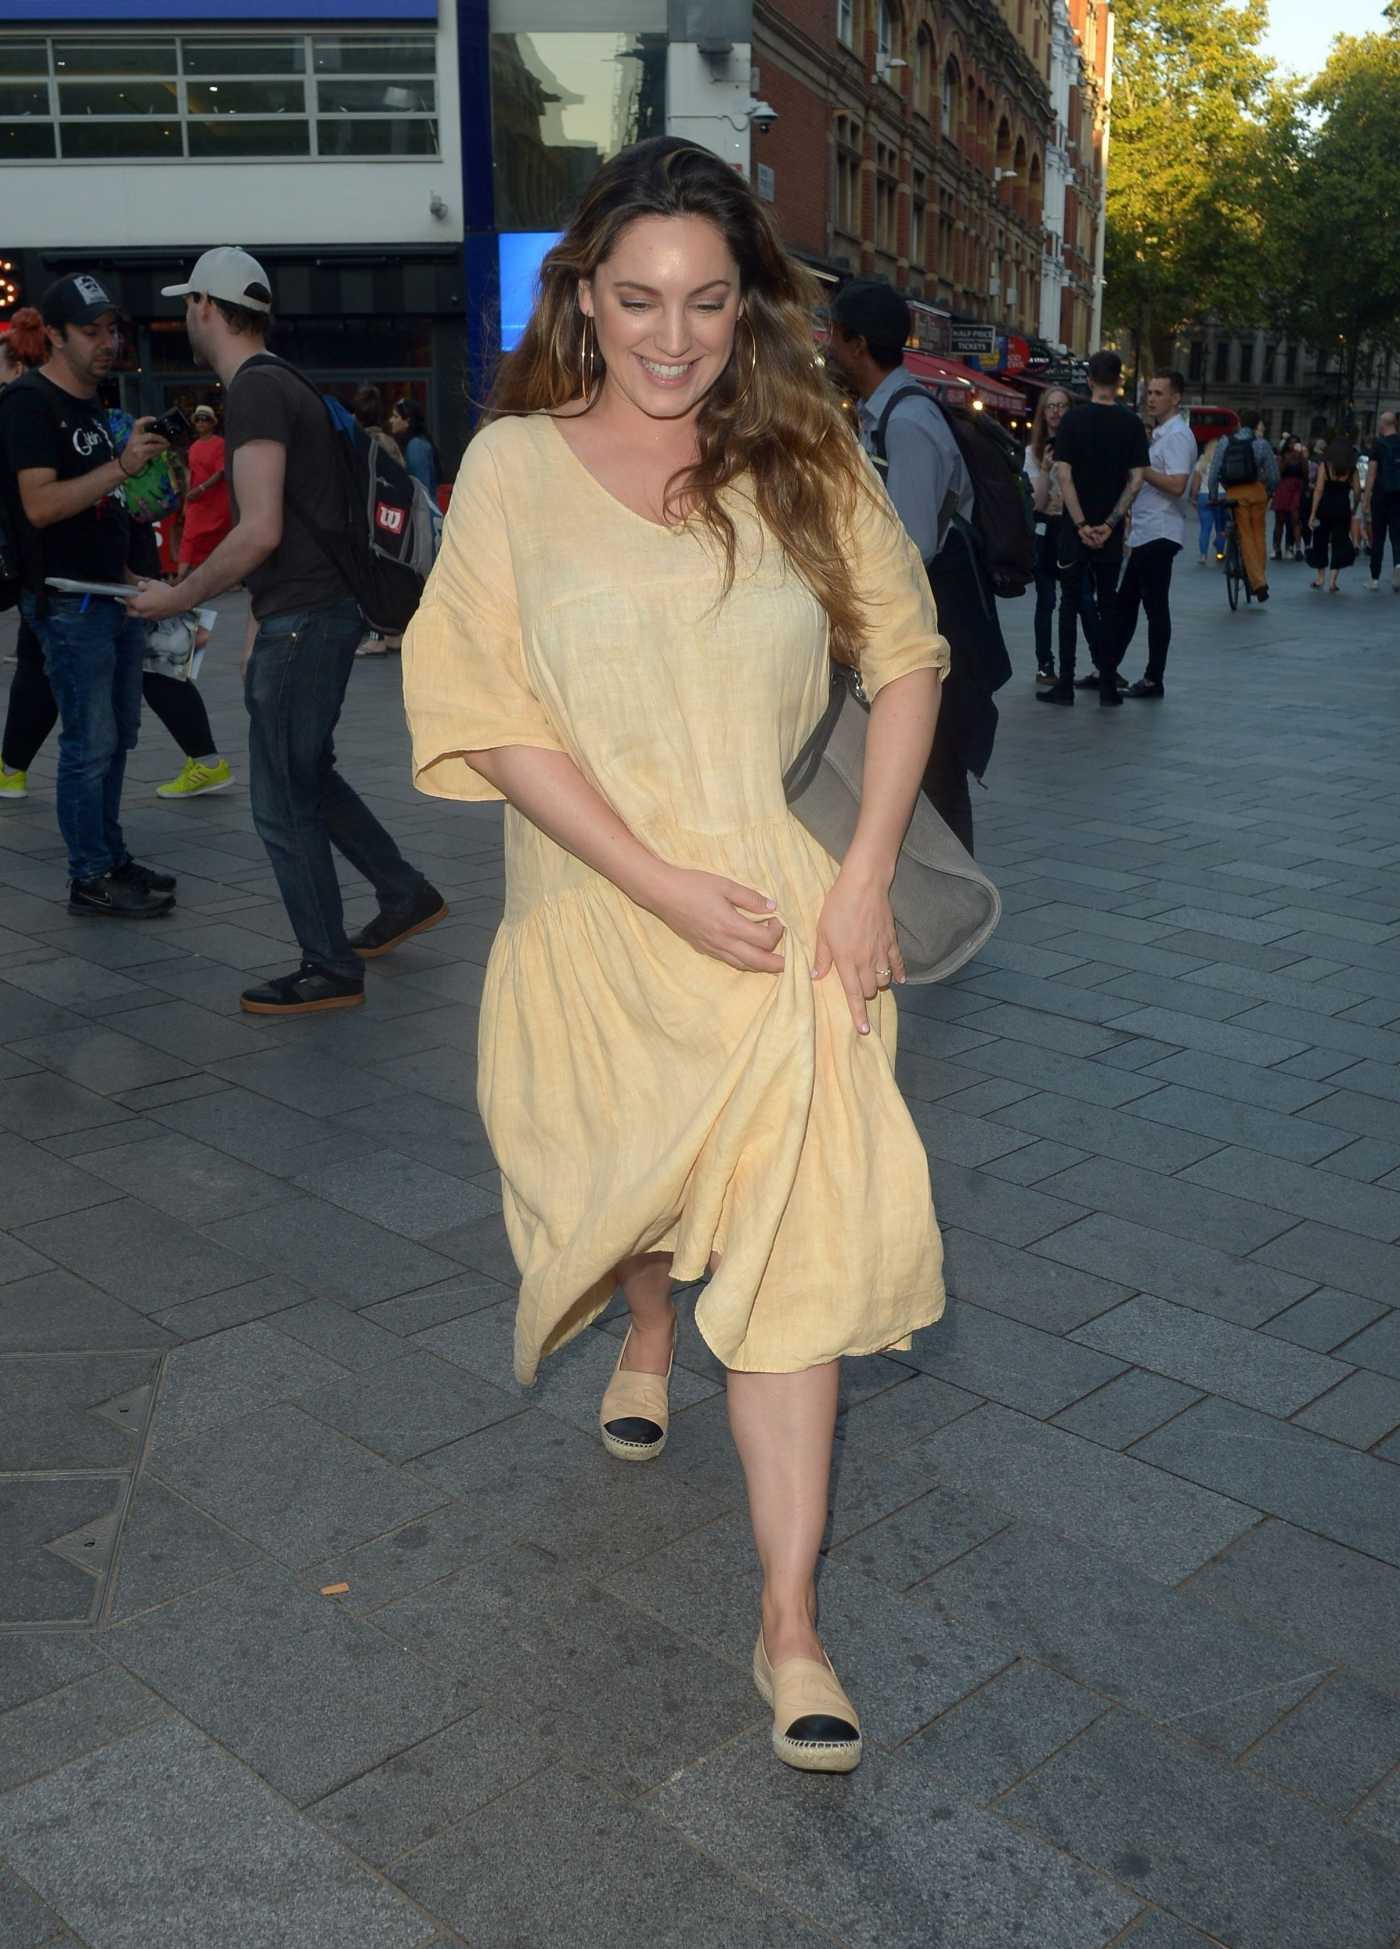 Kelly Brook in a Yellow Dress Arrives at Global Radio Studios in London 08/23/2019